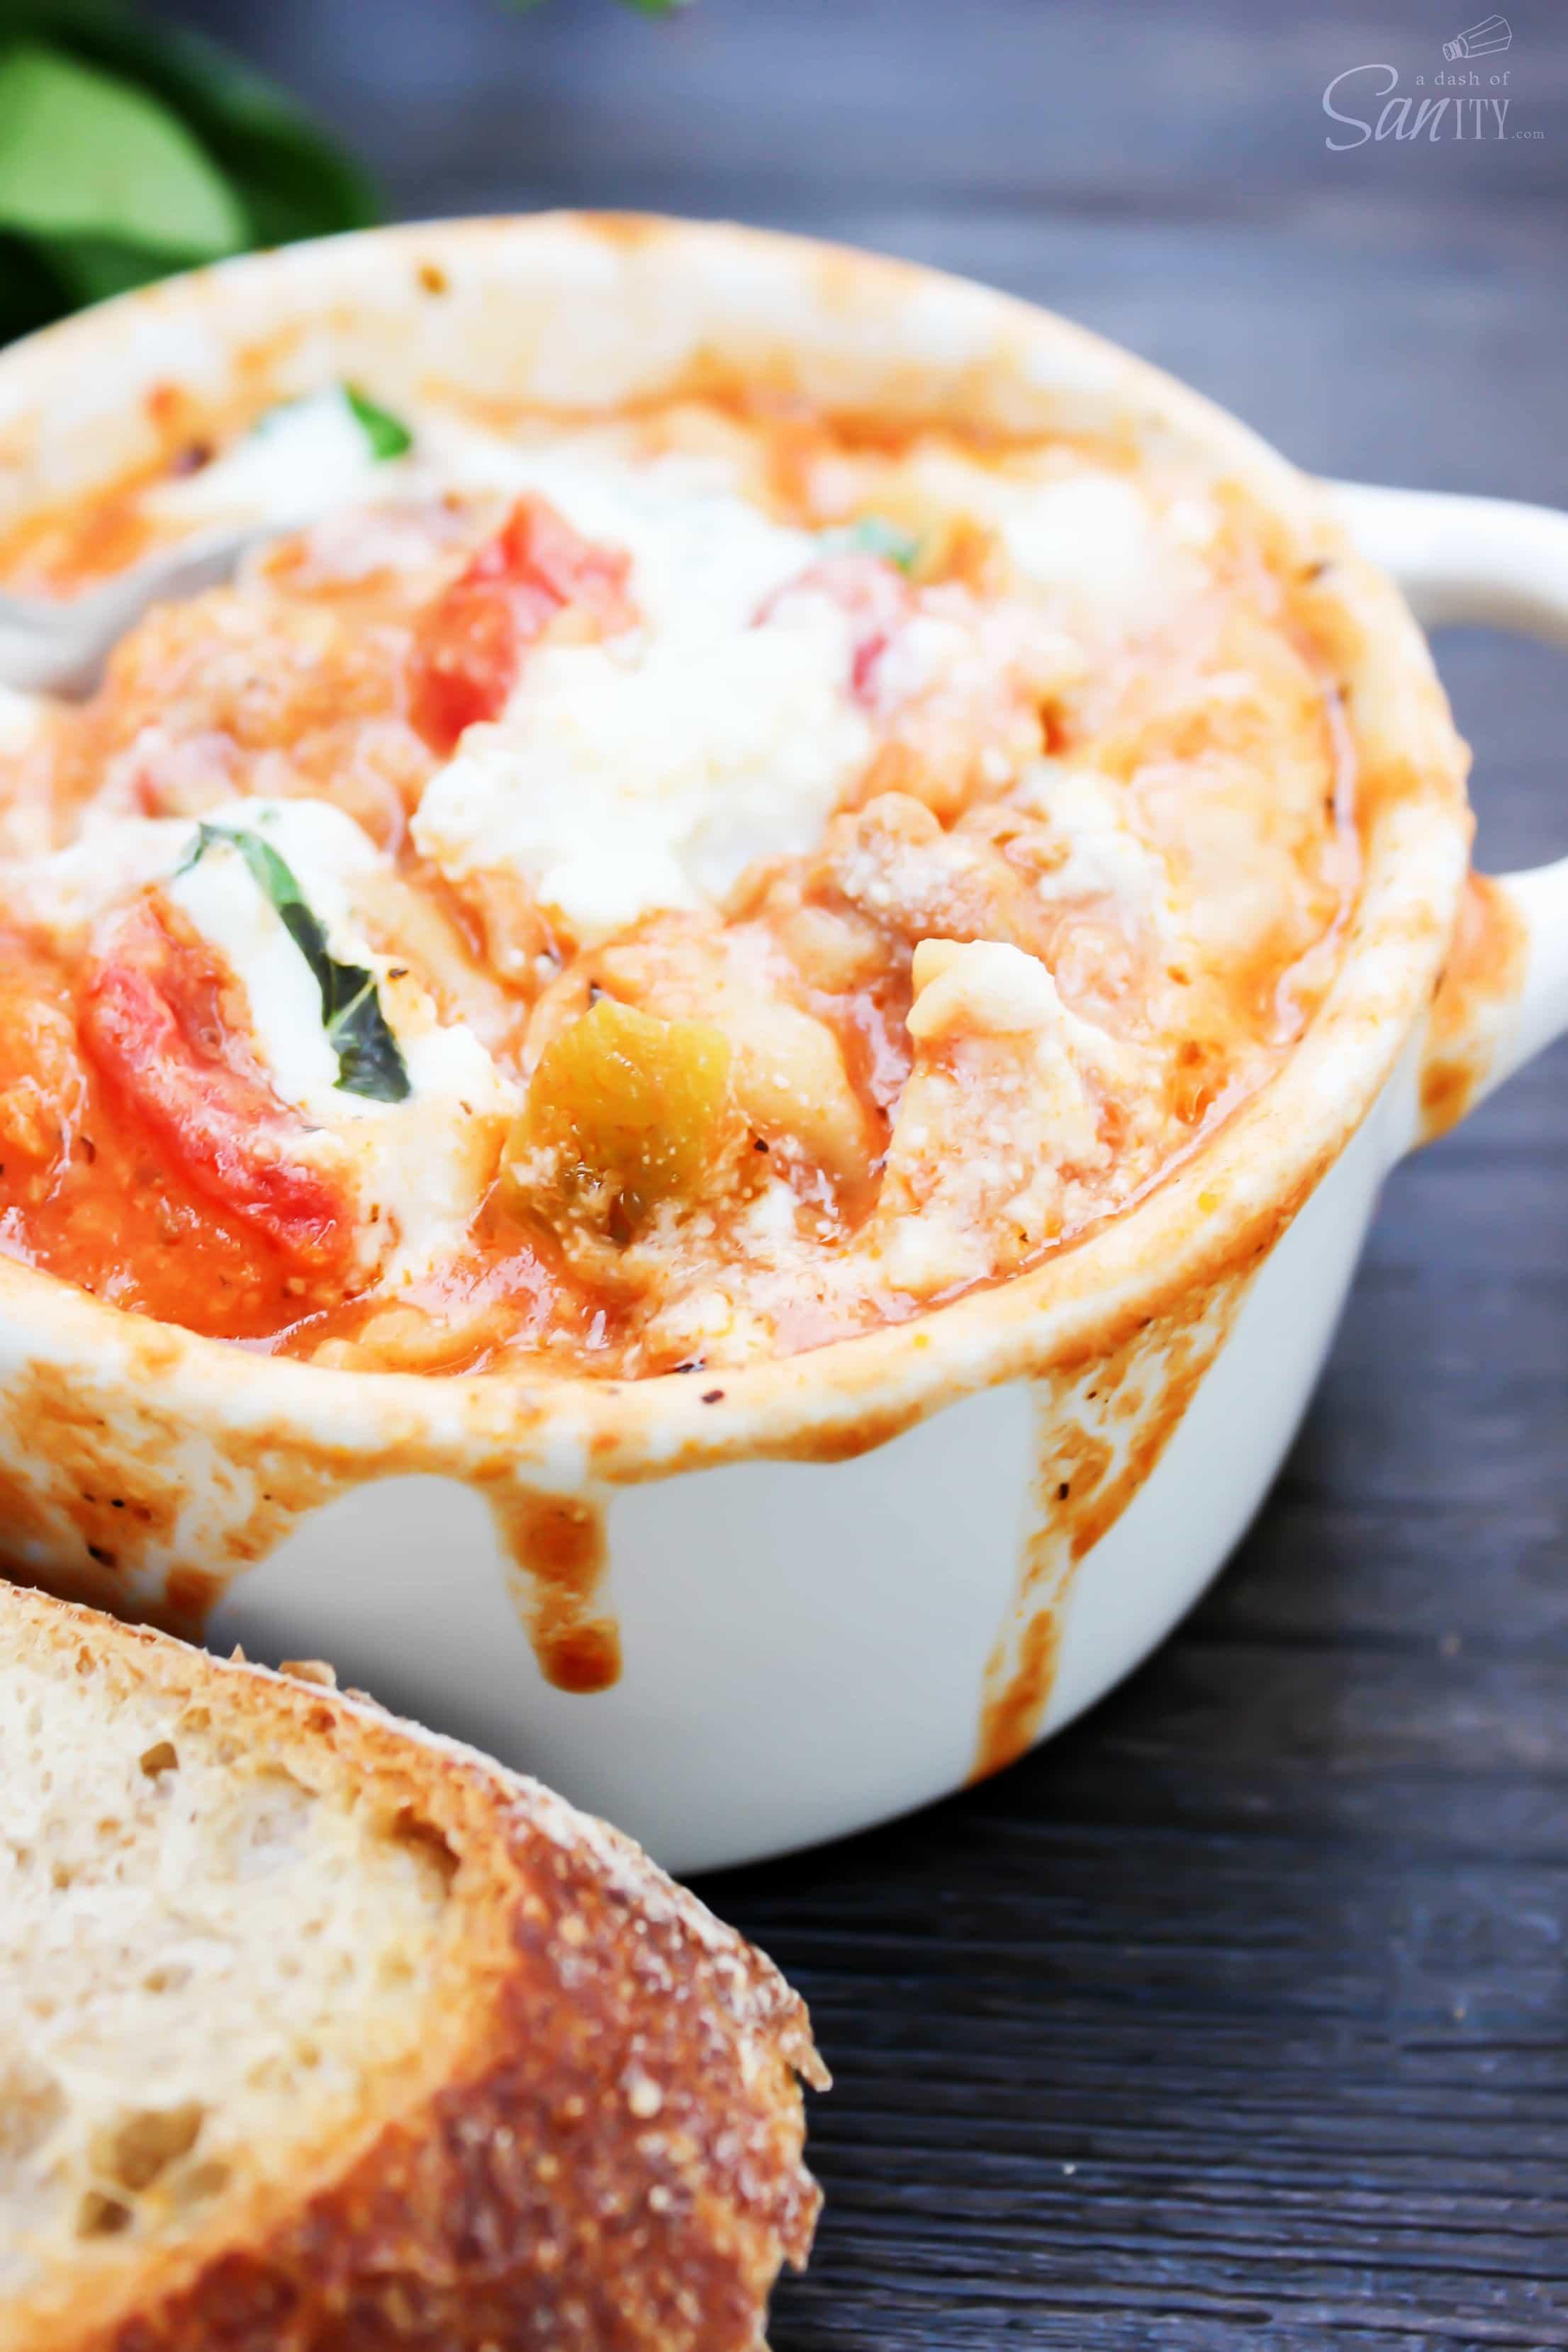 This Slow Cooker Lasagna Soup is comfort food at its best. Let it simmer all day while it fills up the house with the aroma of tomatoes and basil.